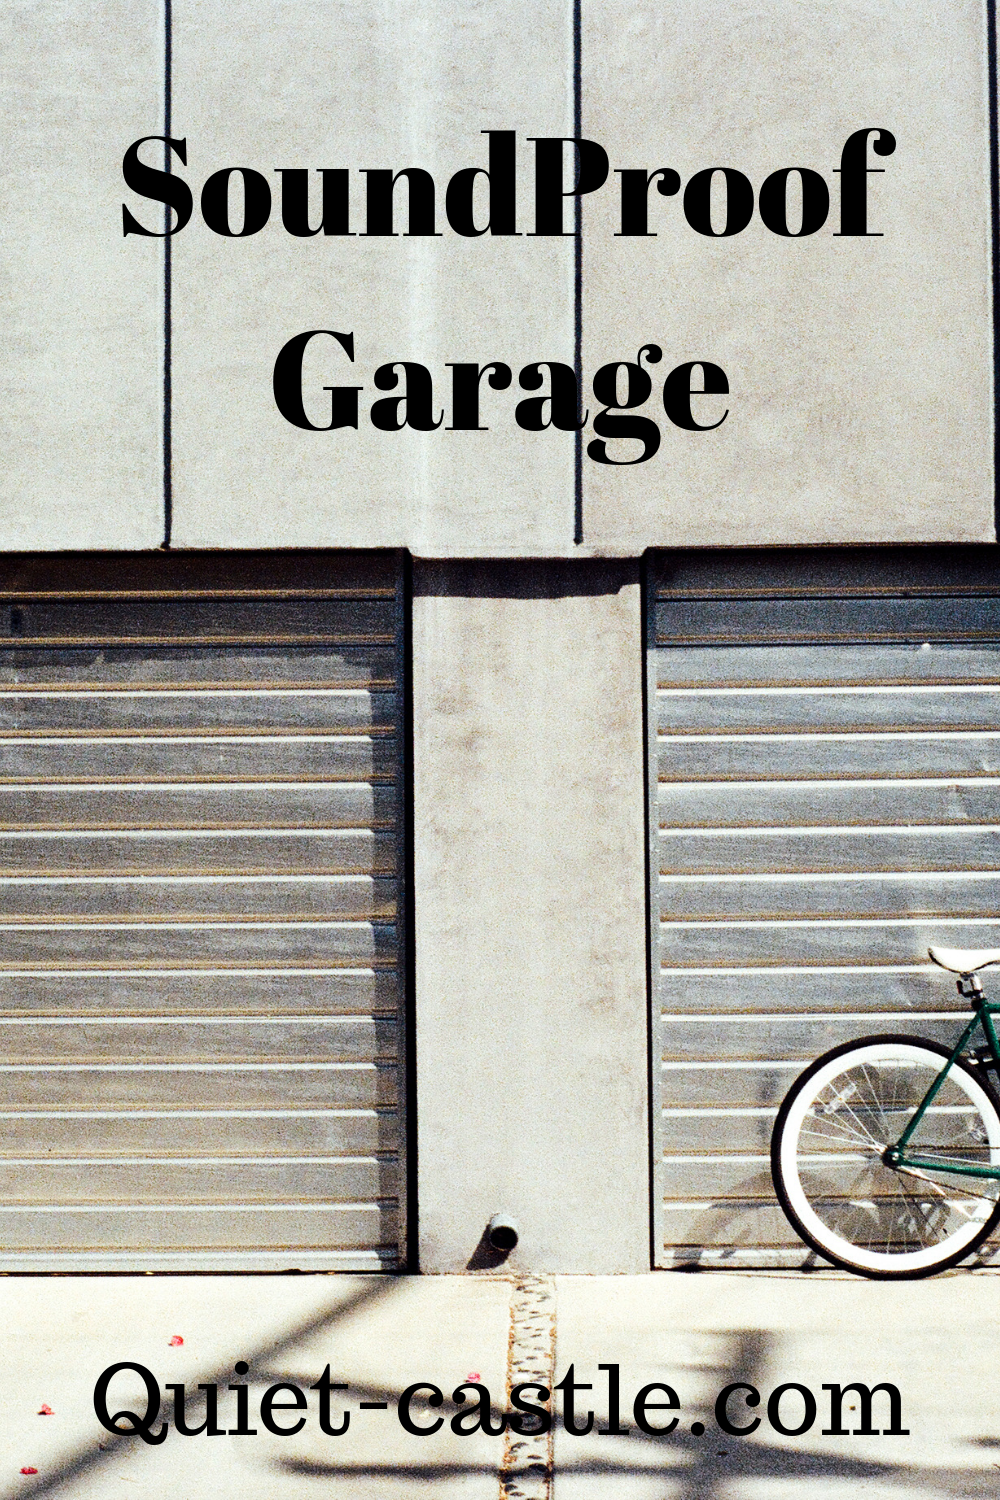 Soundproof Garage How Do I Soundproof My Garage For A